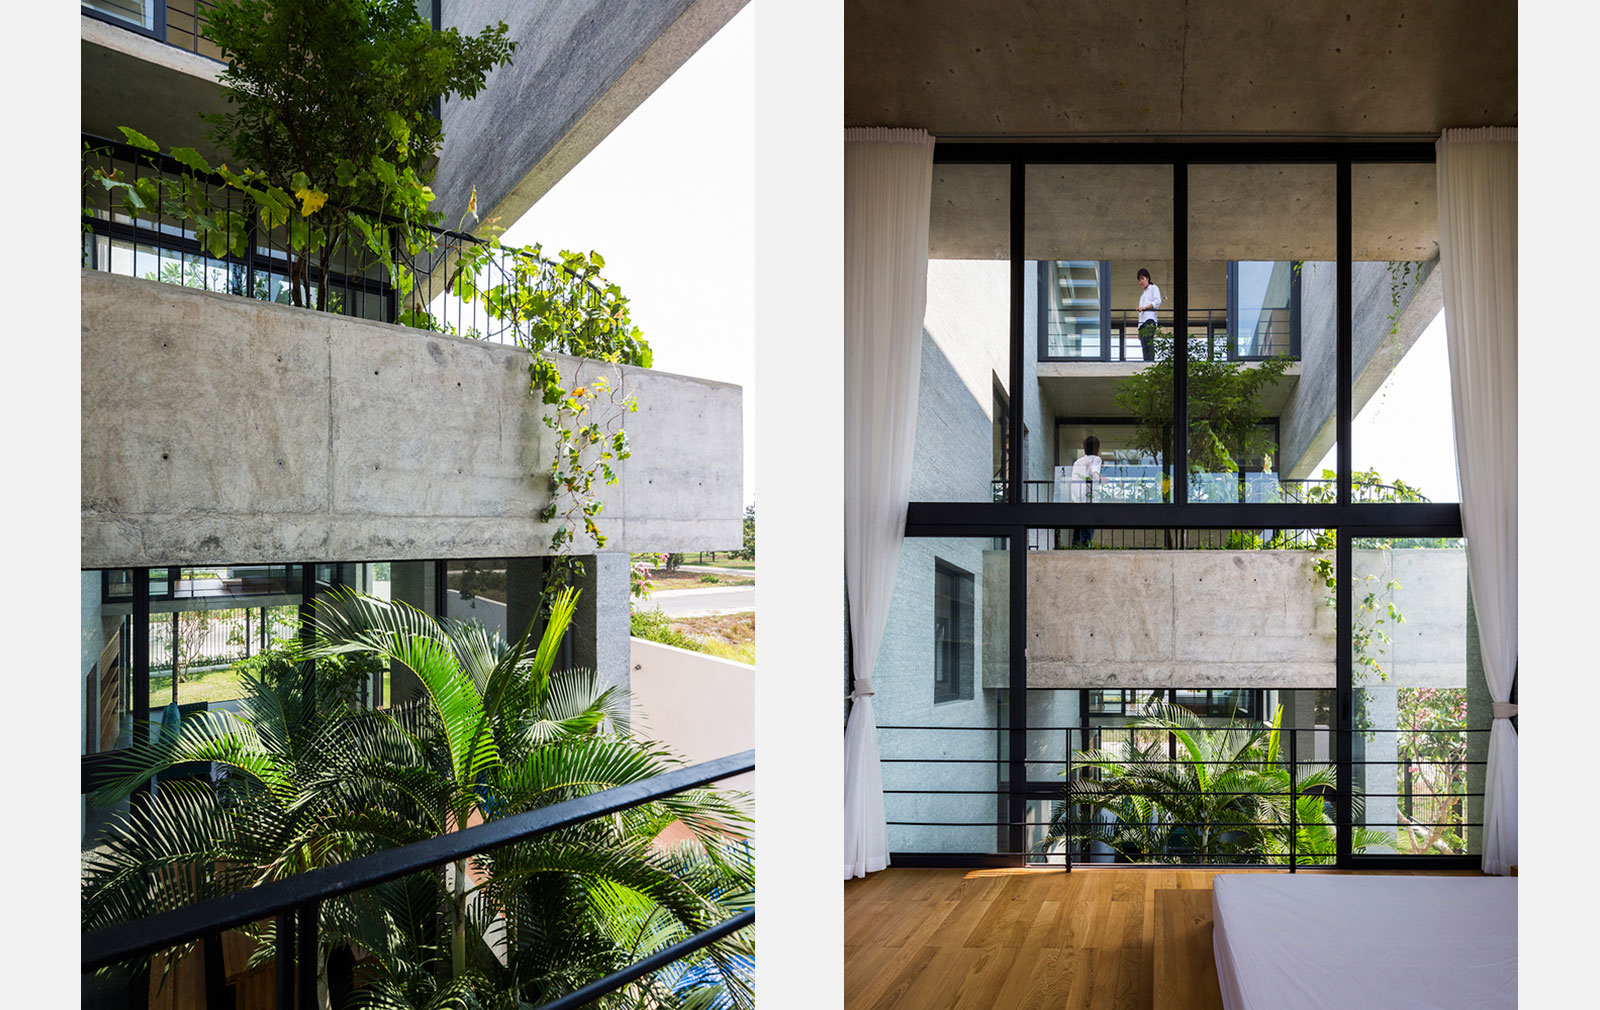 Binh House, by Vo Trong Nghia Architects in Ho Chi Minh City, Vietnam